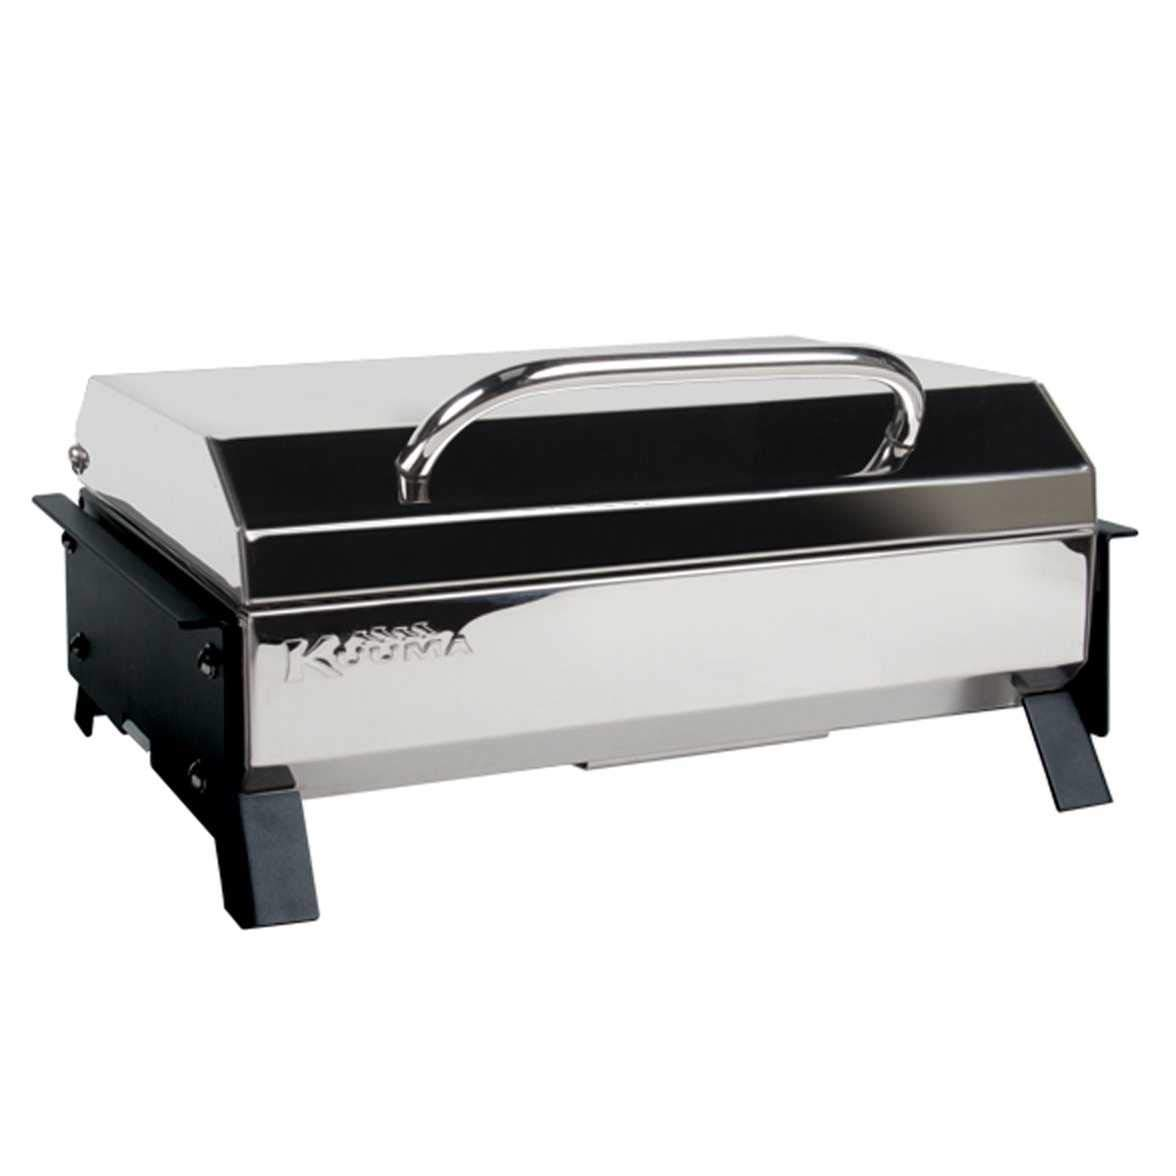 Camco 58162 Profile Cubed 150 Gas Grill by Camco